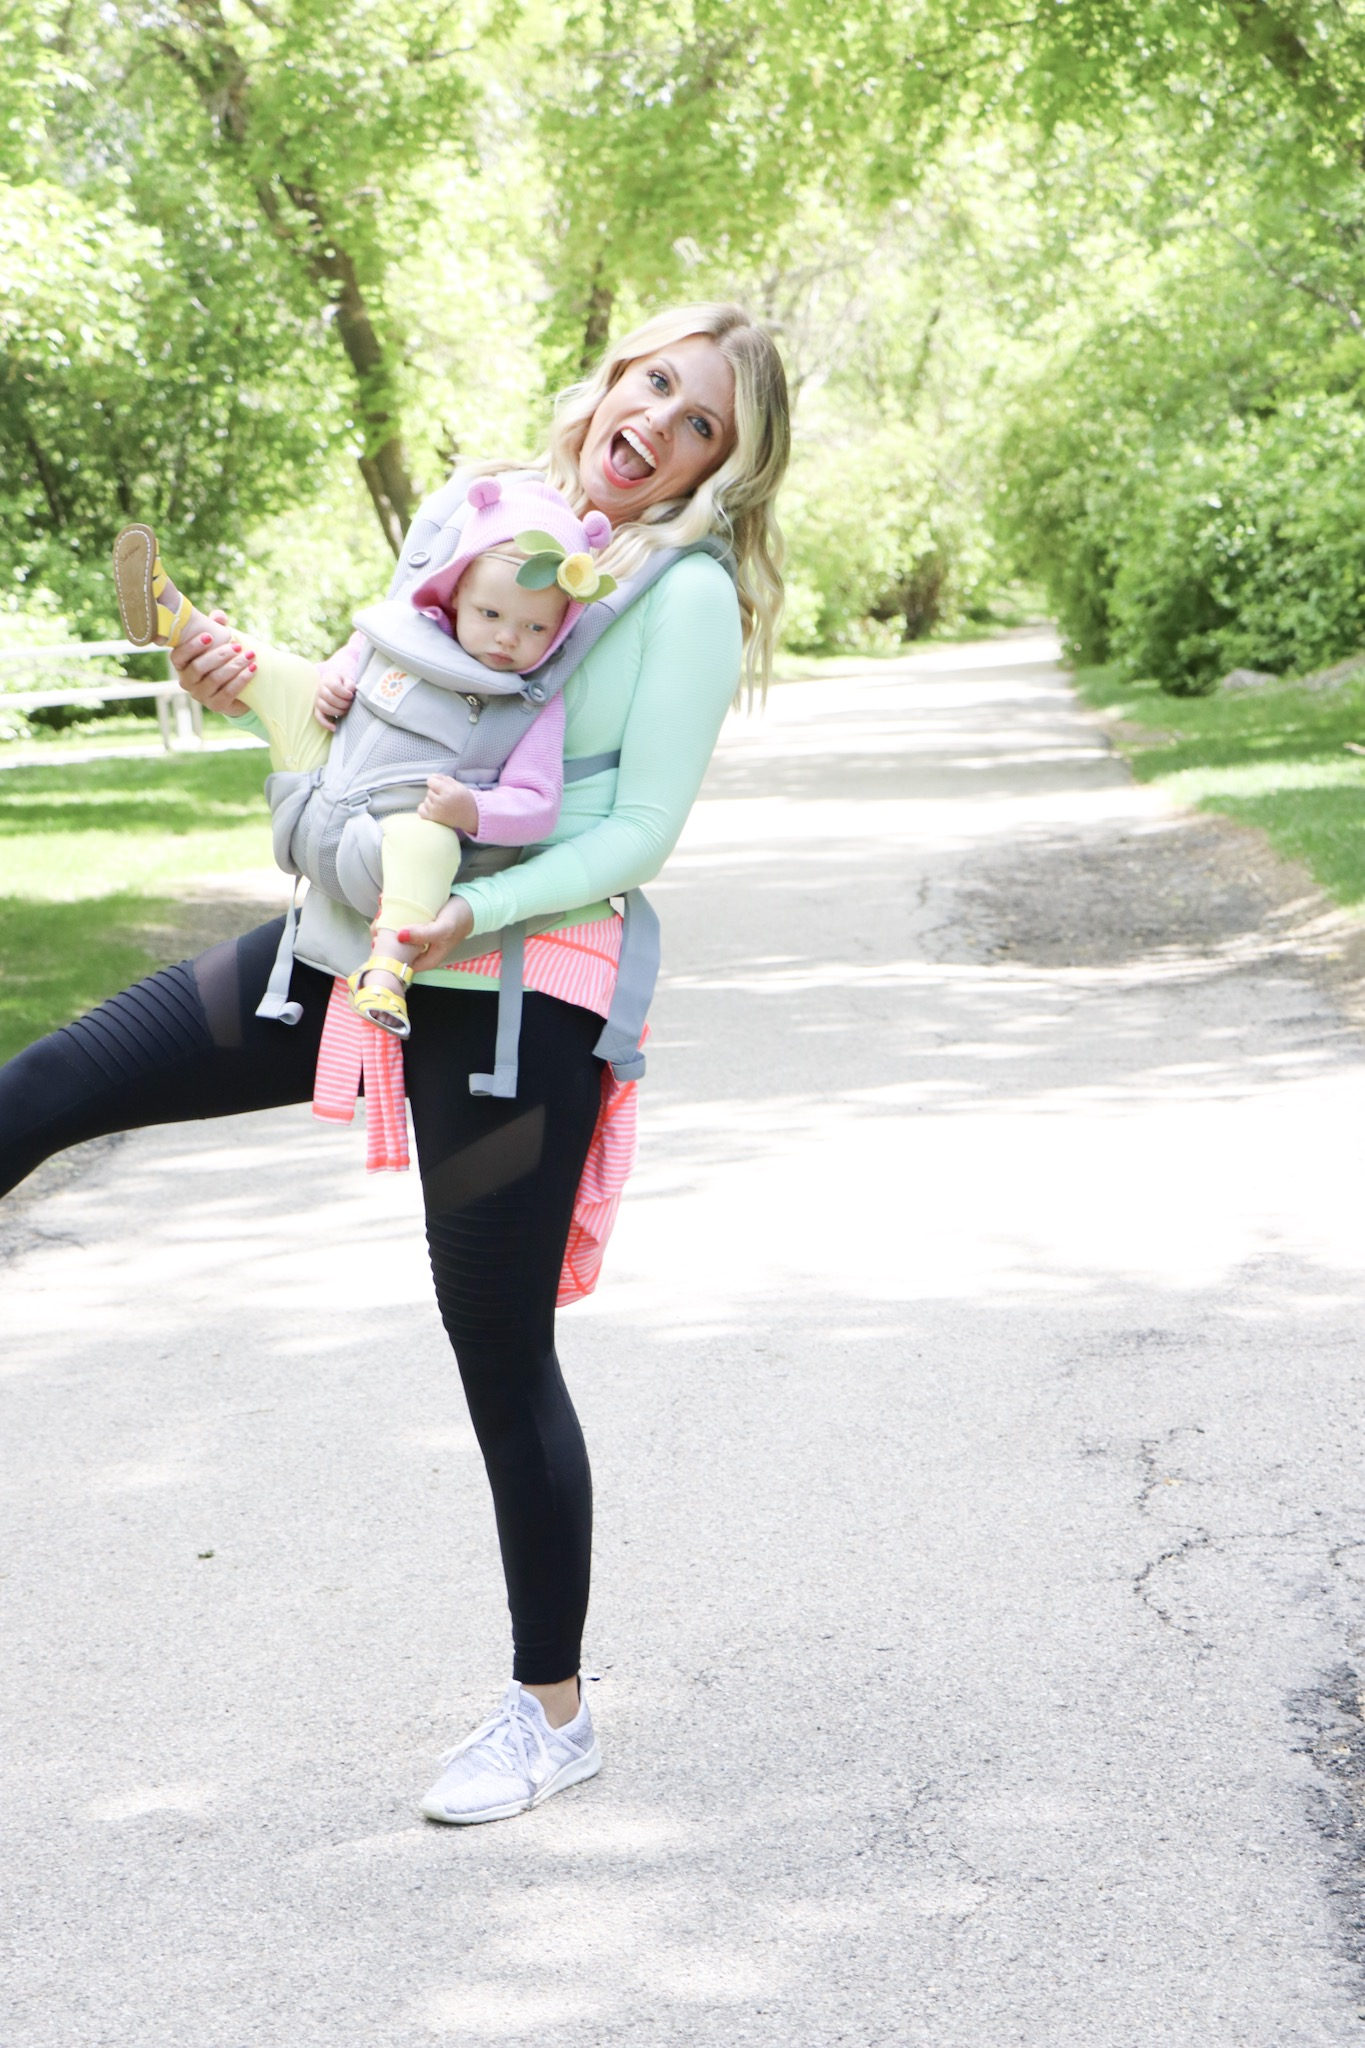 Ergobaby Event at Bridal Vail Falls – Ergobaby Omni 360 Baby Carrier